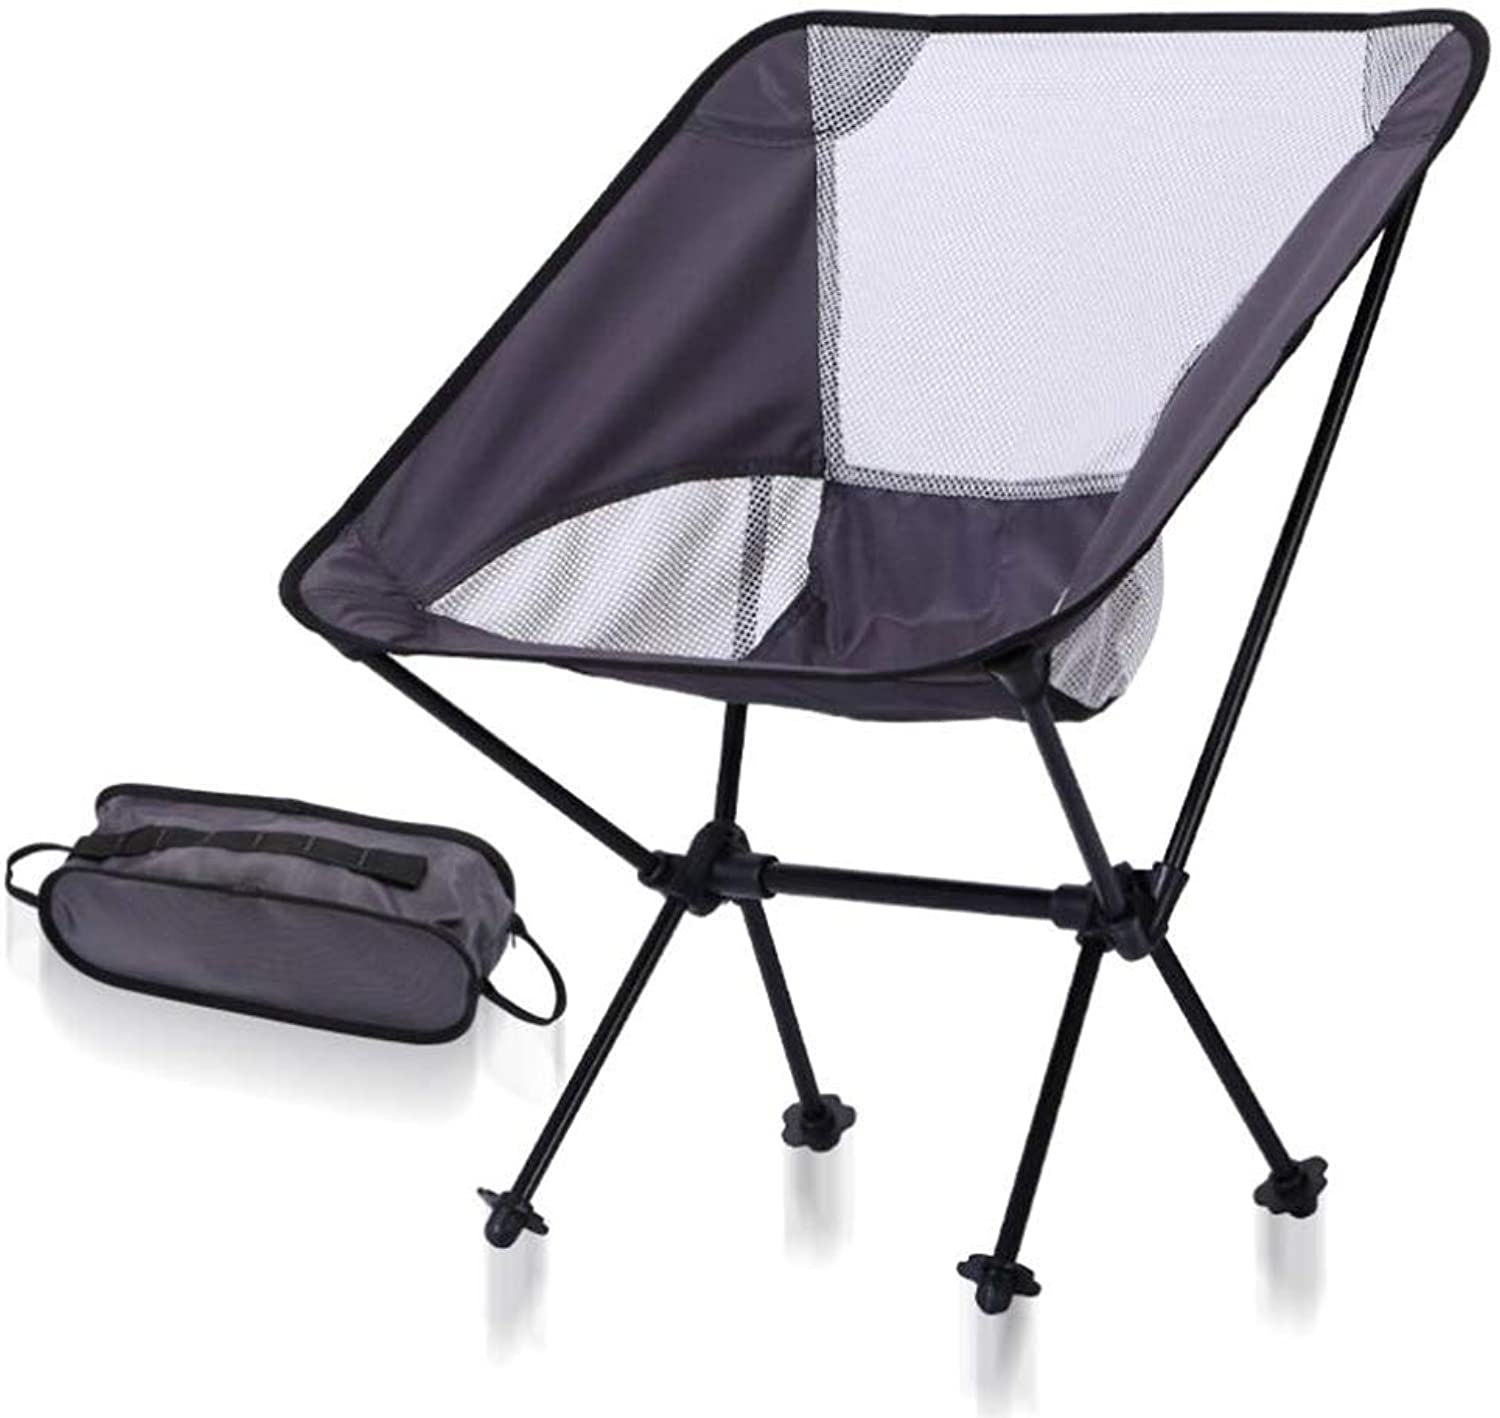 Folding Chair, Portable Aluminum Fishing Chair, Ultra Light Moon Chair, Suitable for Camping Hiking Gardening (color   04)